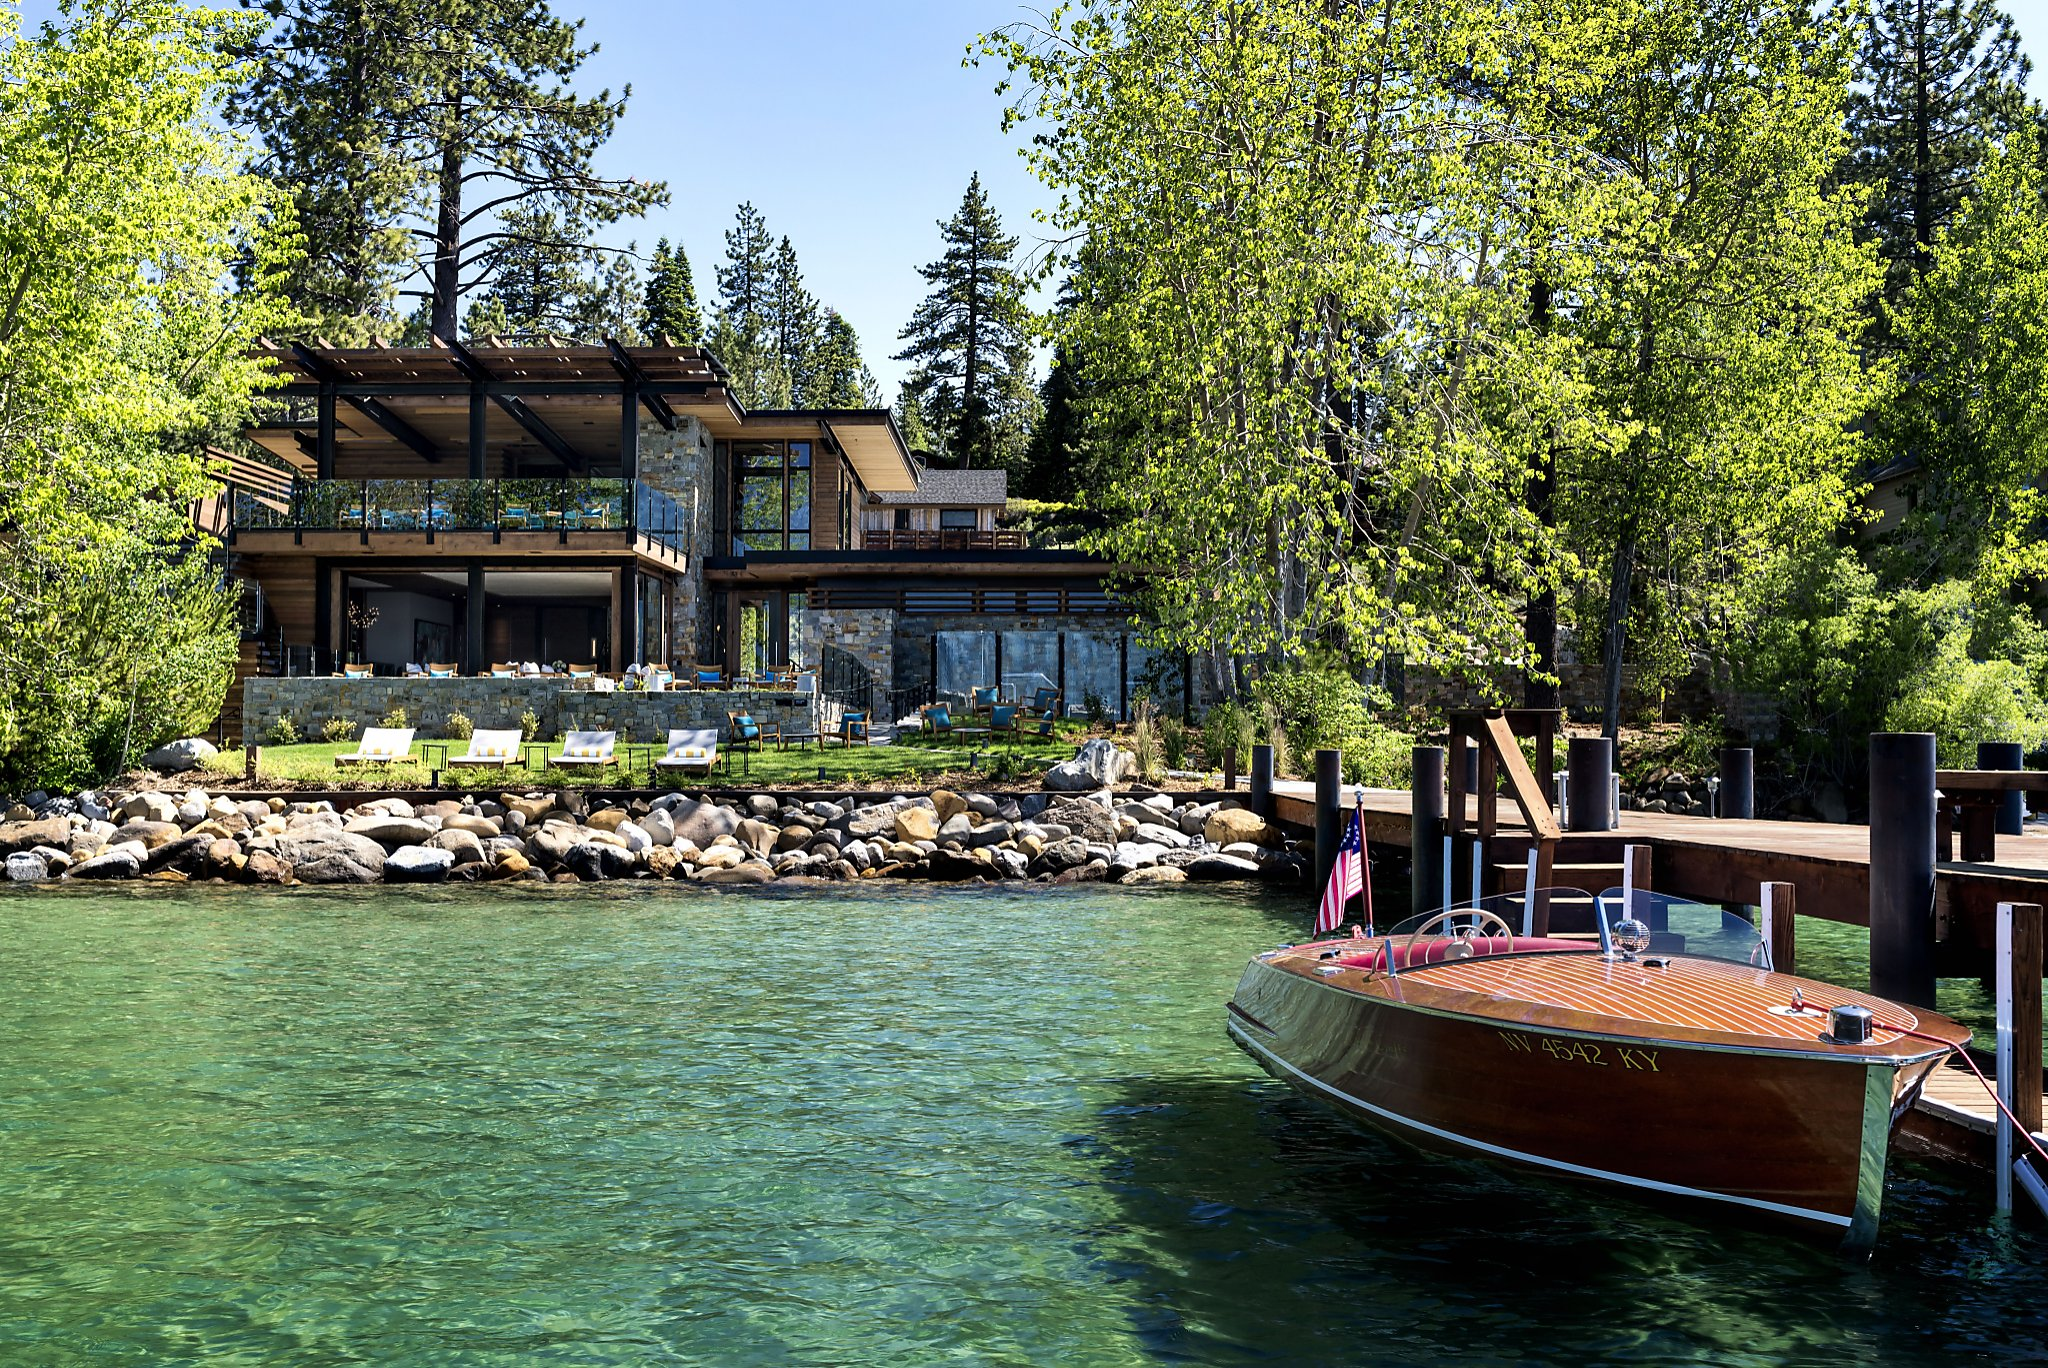 Small Houses For Sale Ritz Carlton Lake Tahoe Opens Exclusive Lakefront